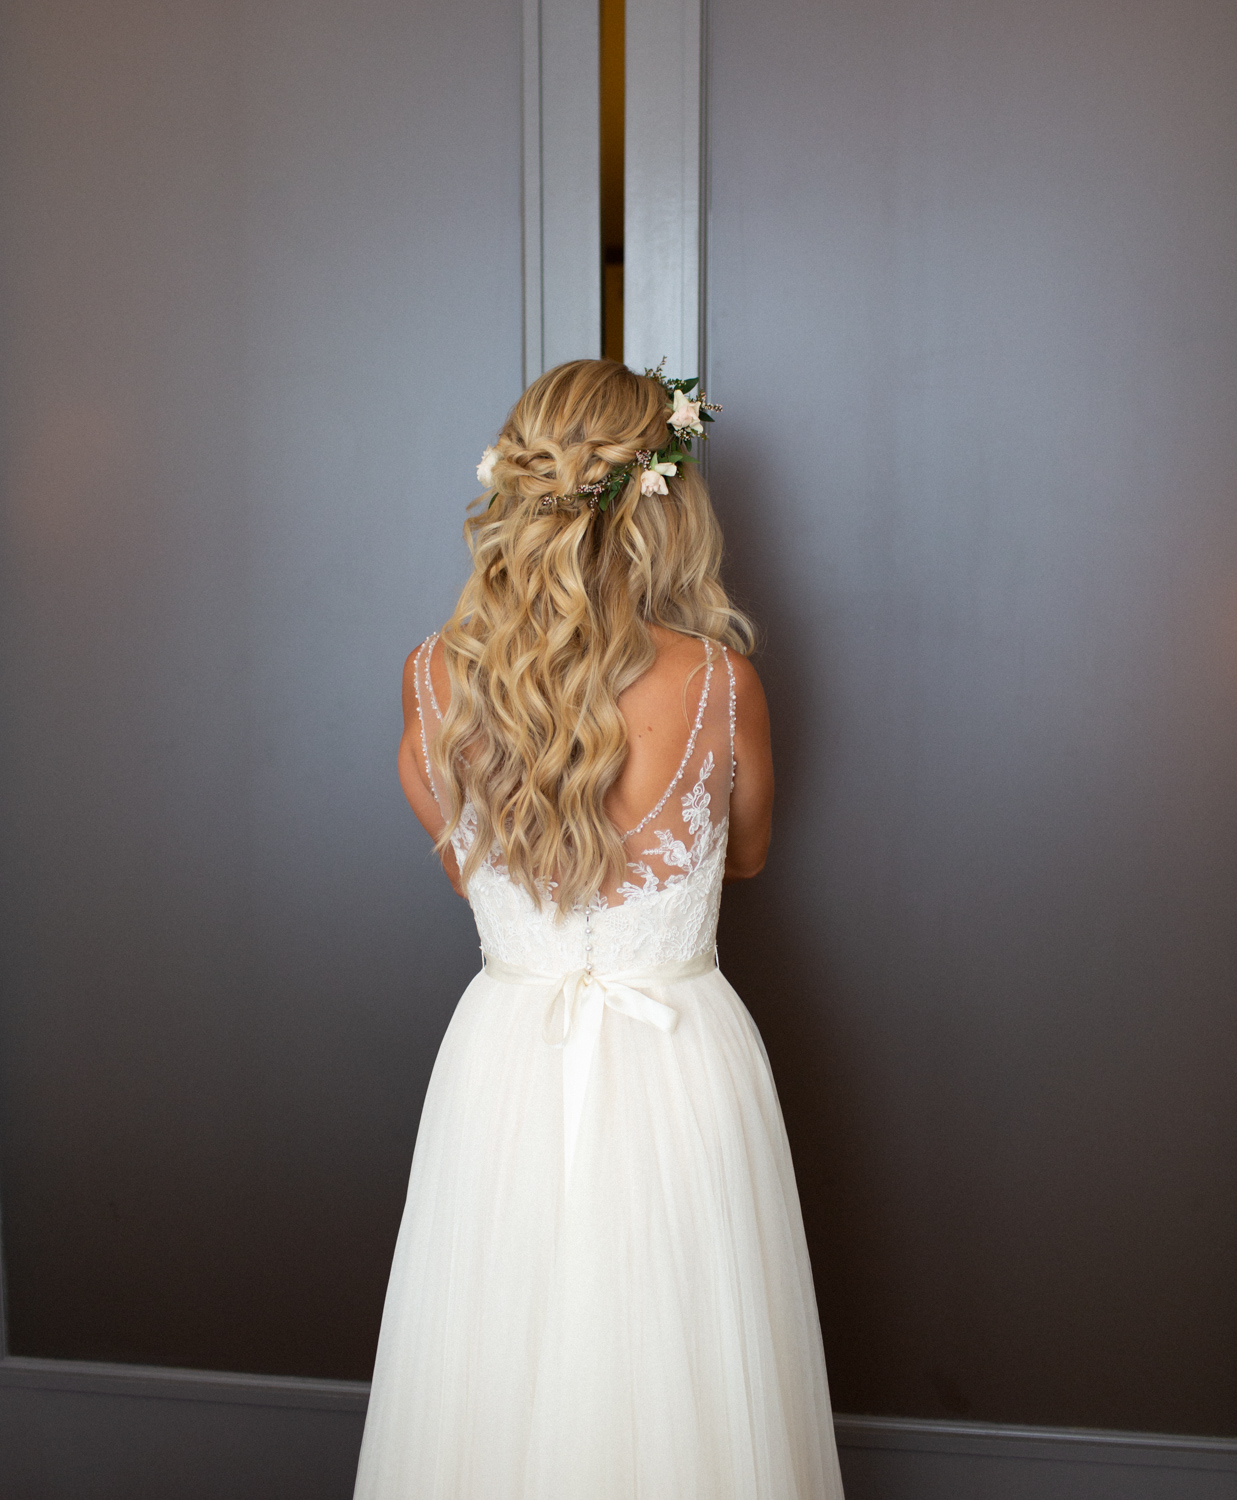 Jessica + Scott_Olivia_Ashton_Photography-18-3.jpg